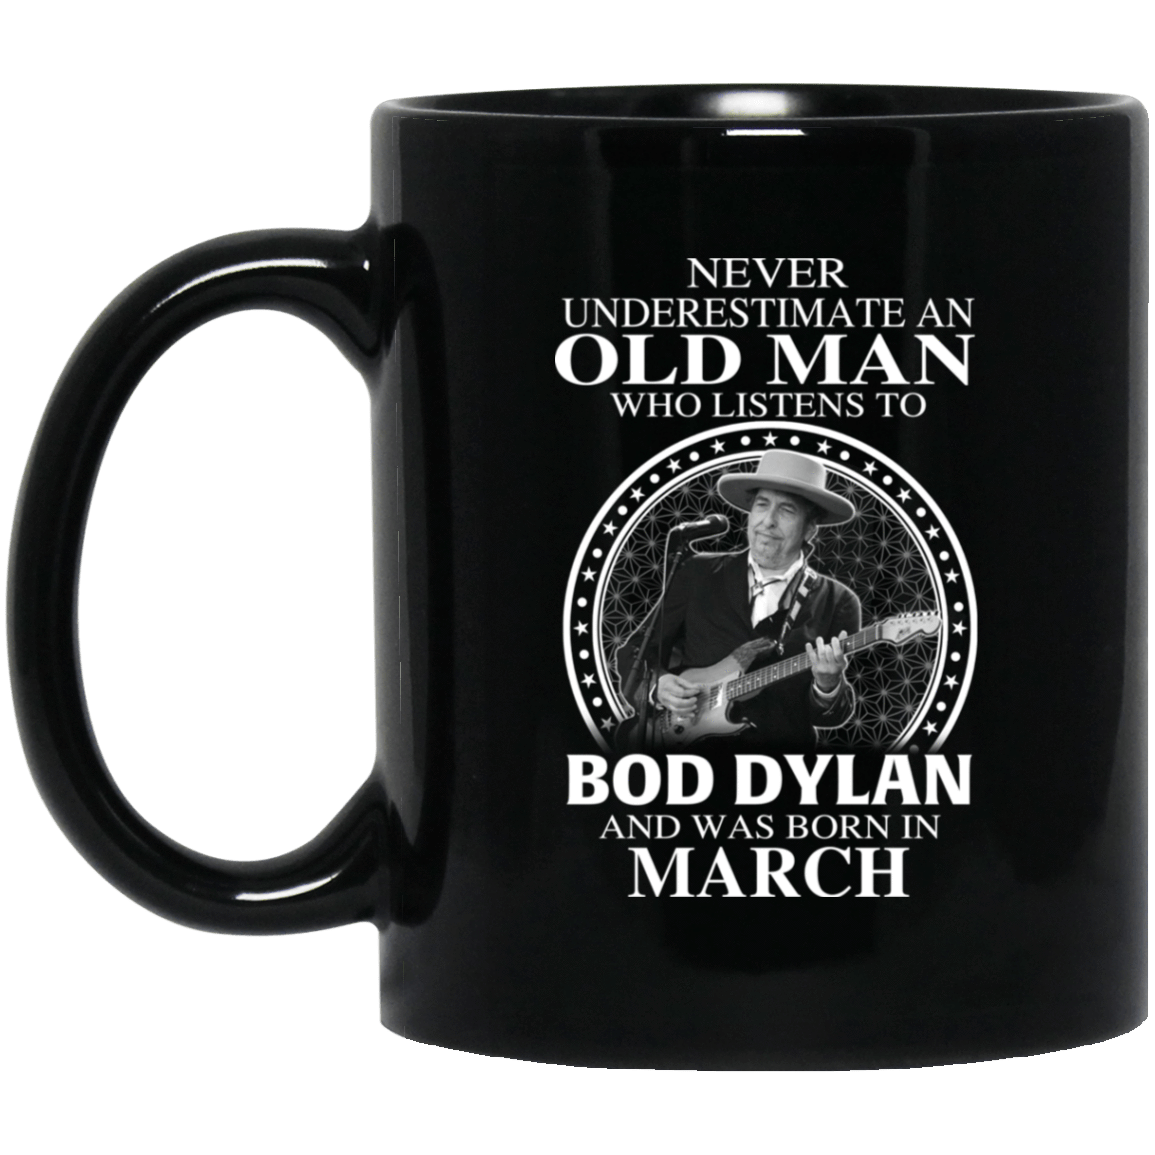 An Old Man Who Listens To Bob Dylan And Was Born In March Mug 1065-10181-76154391-49307 - Tee Ript